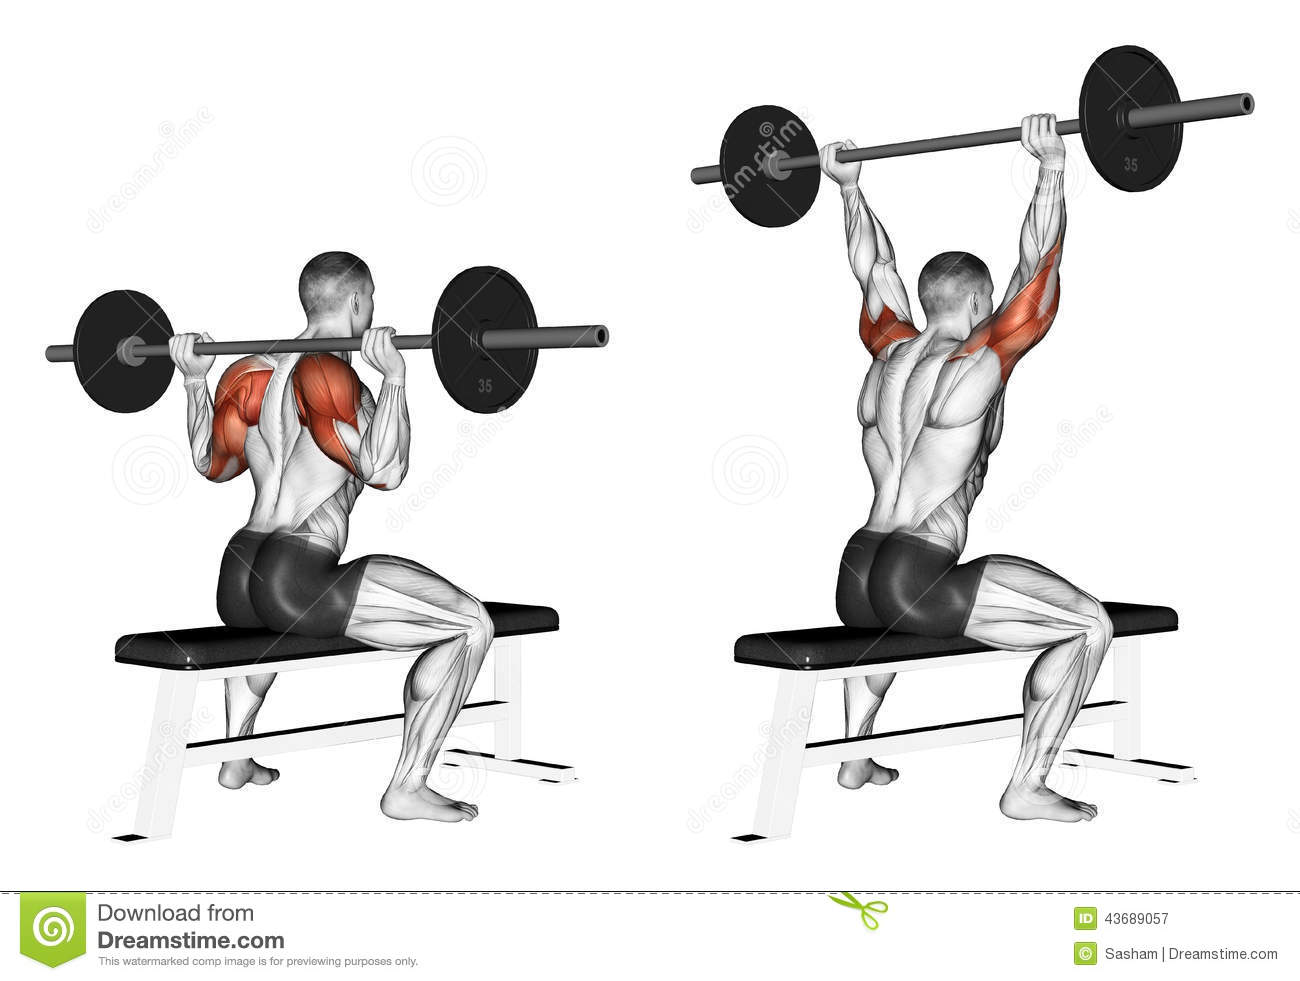 Exercising. Press of a bar because of the head sit